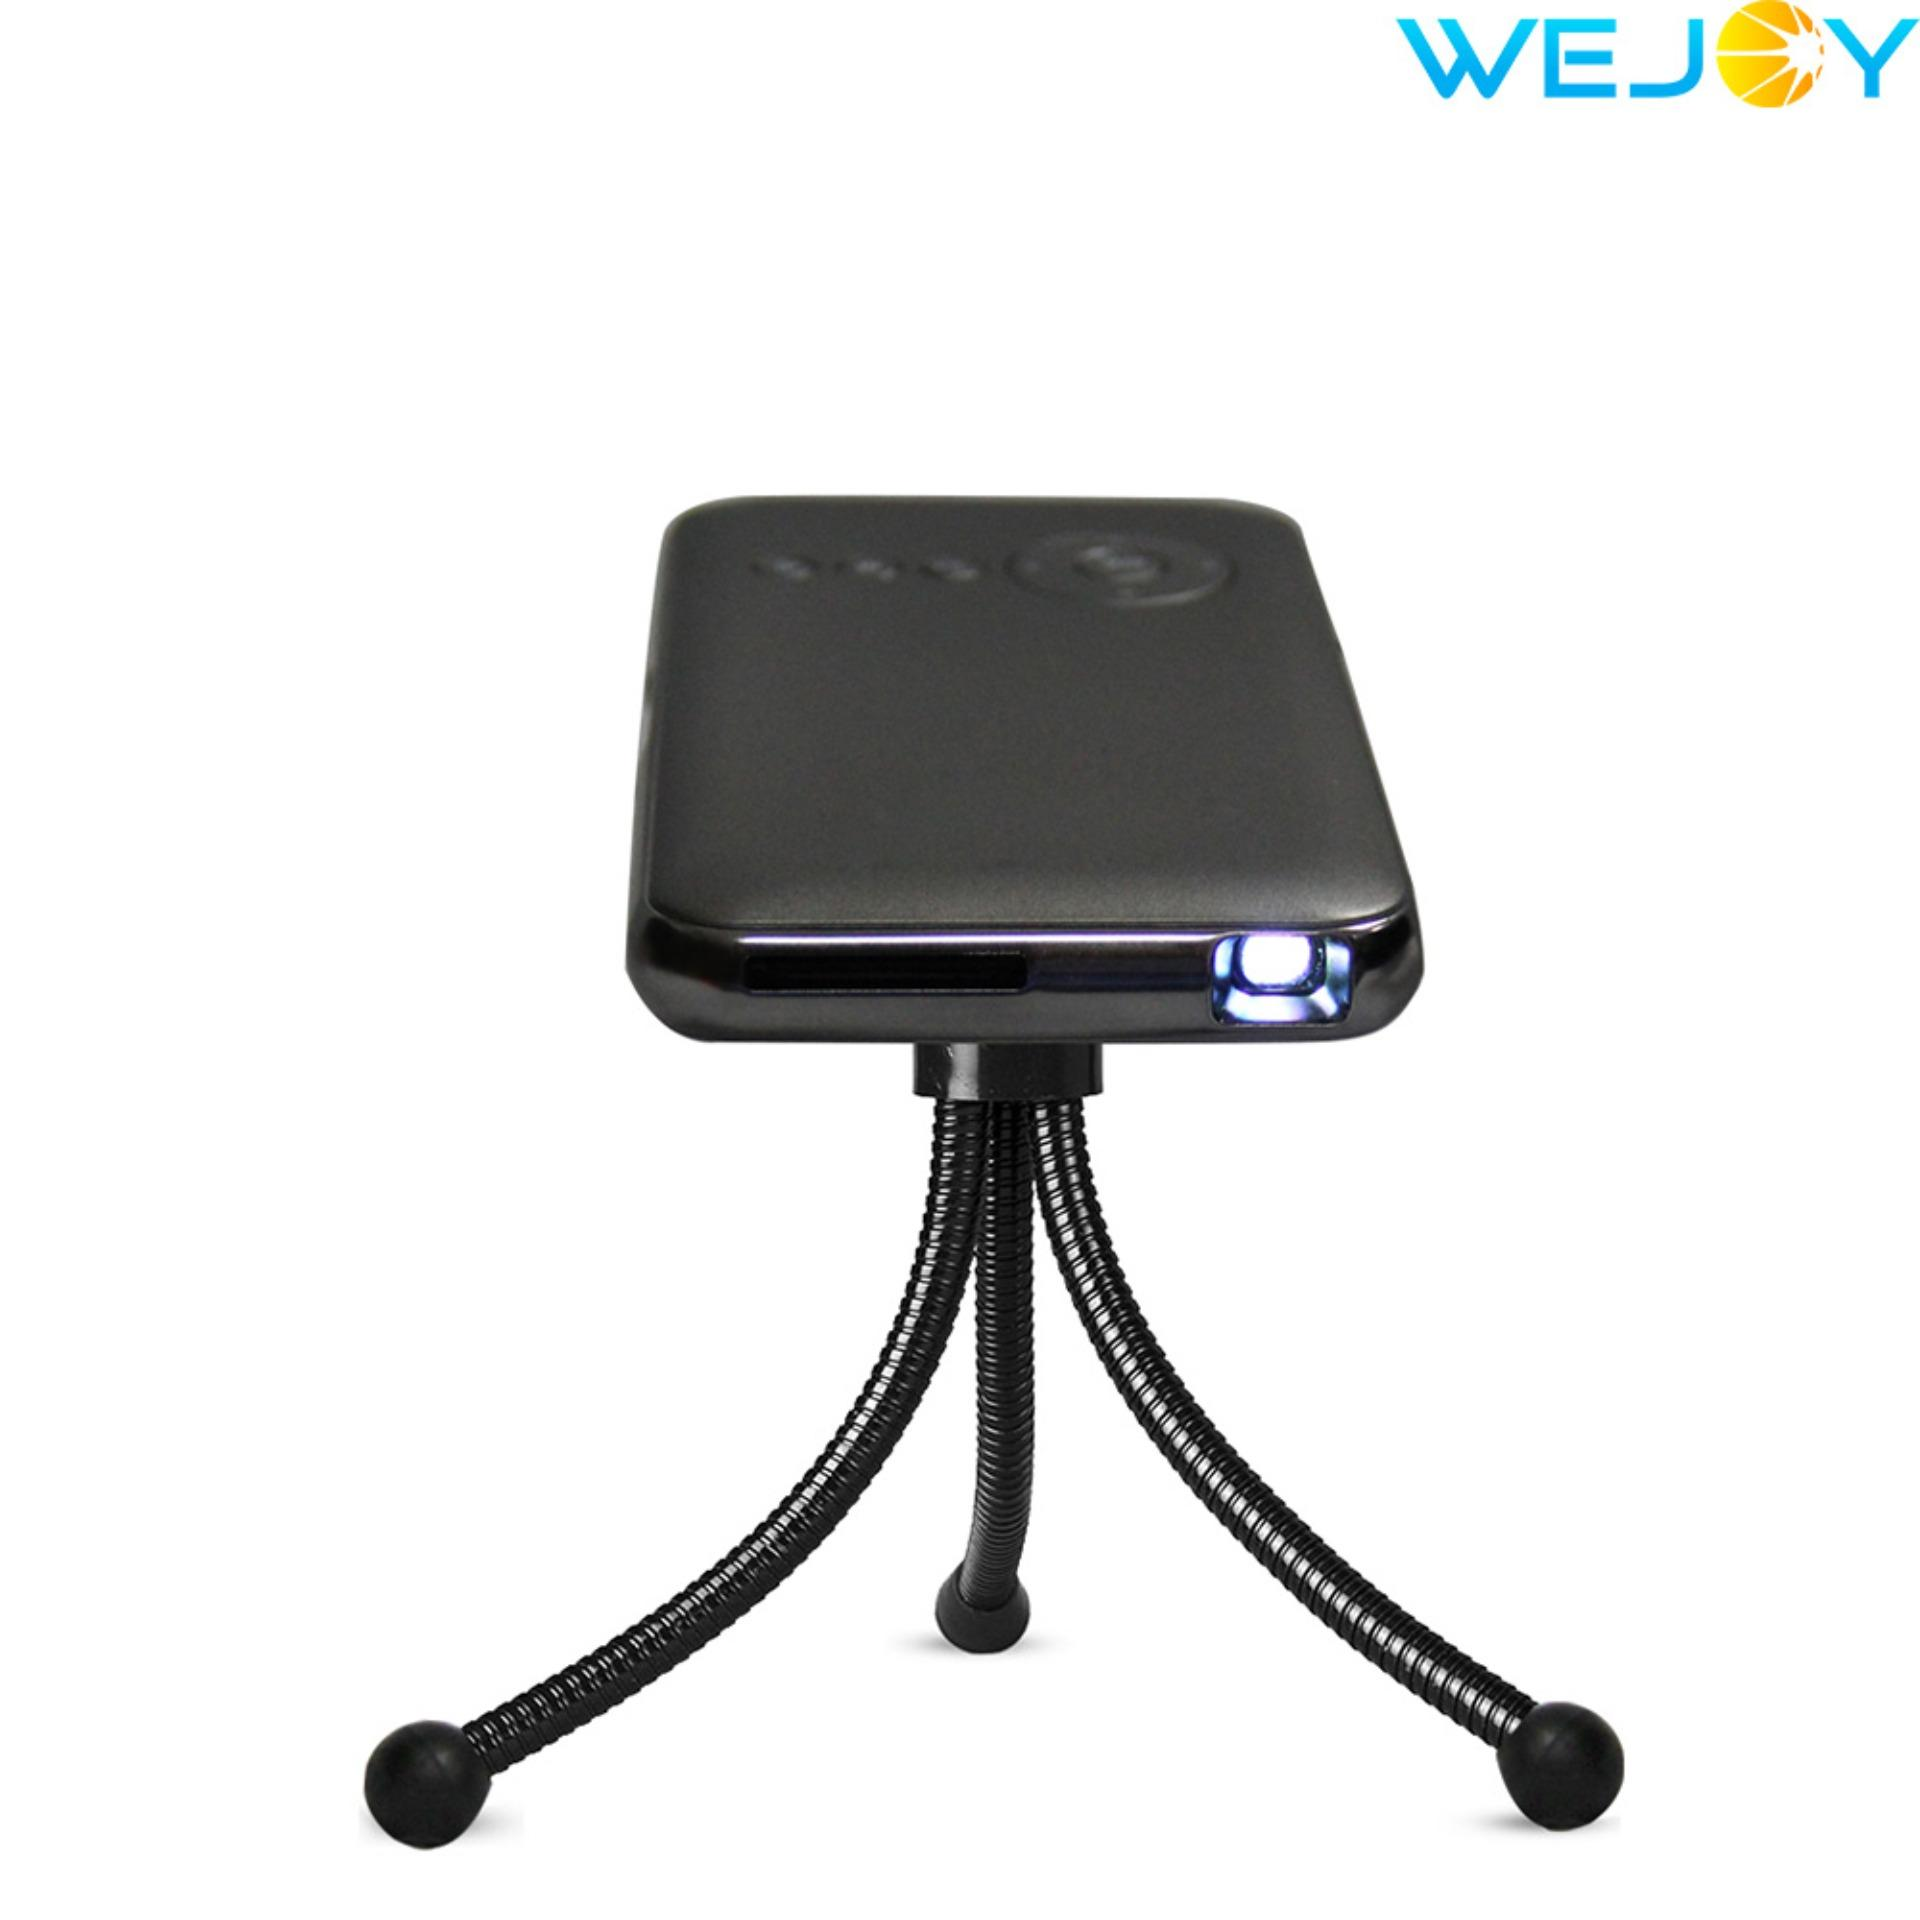 Beli Mini Projektor Store Marwanto606 Unic Led Projector Uc28 400 Lumens Proyektor Portable Uc 28 Plus Wejoy Handy Dl S6 1g 16g Rom Business With Wifi Bluetooth